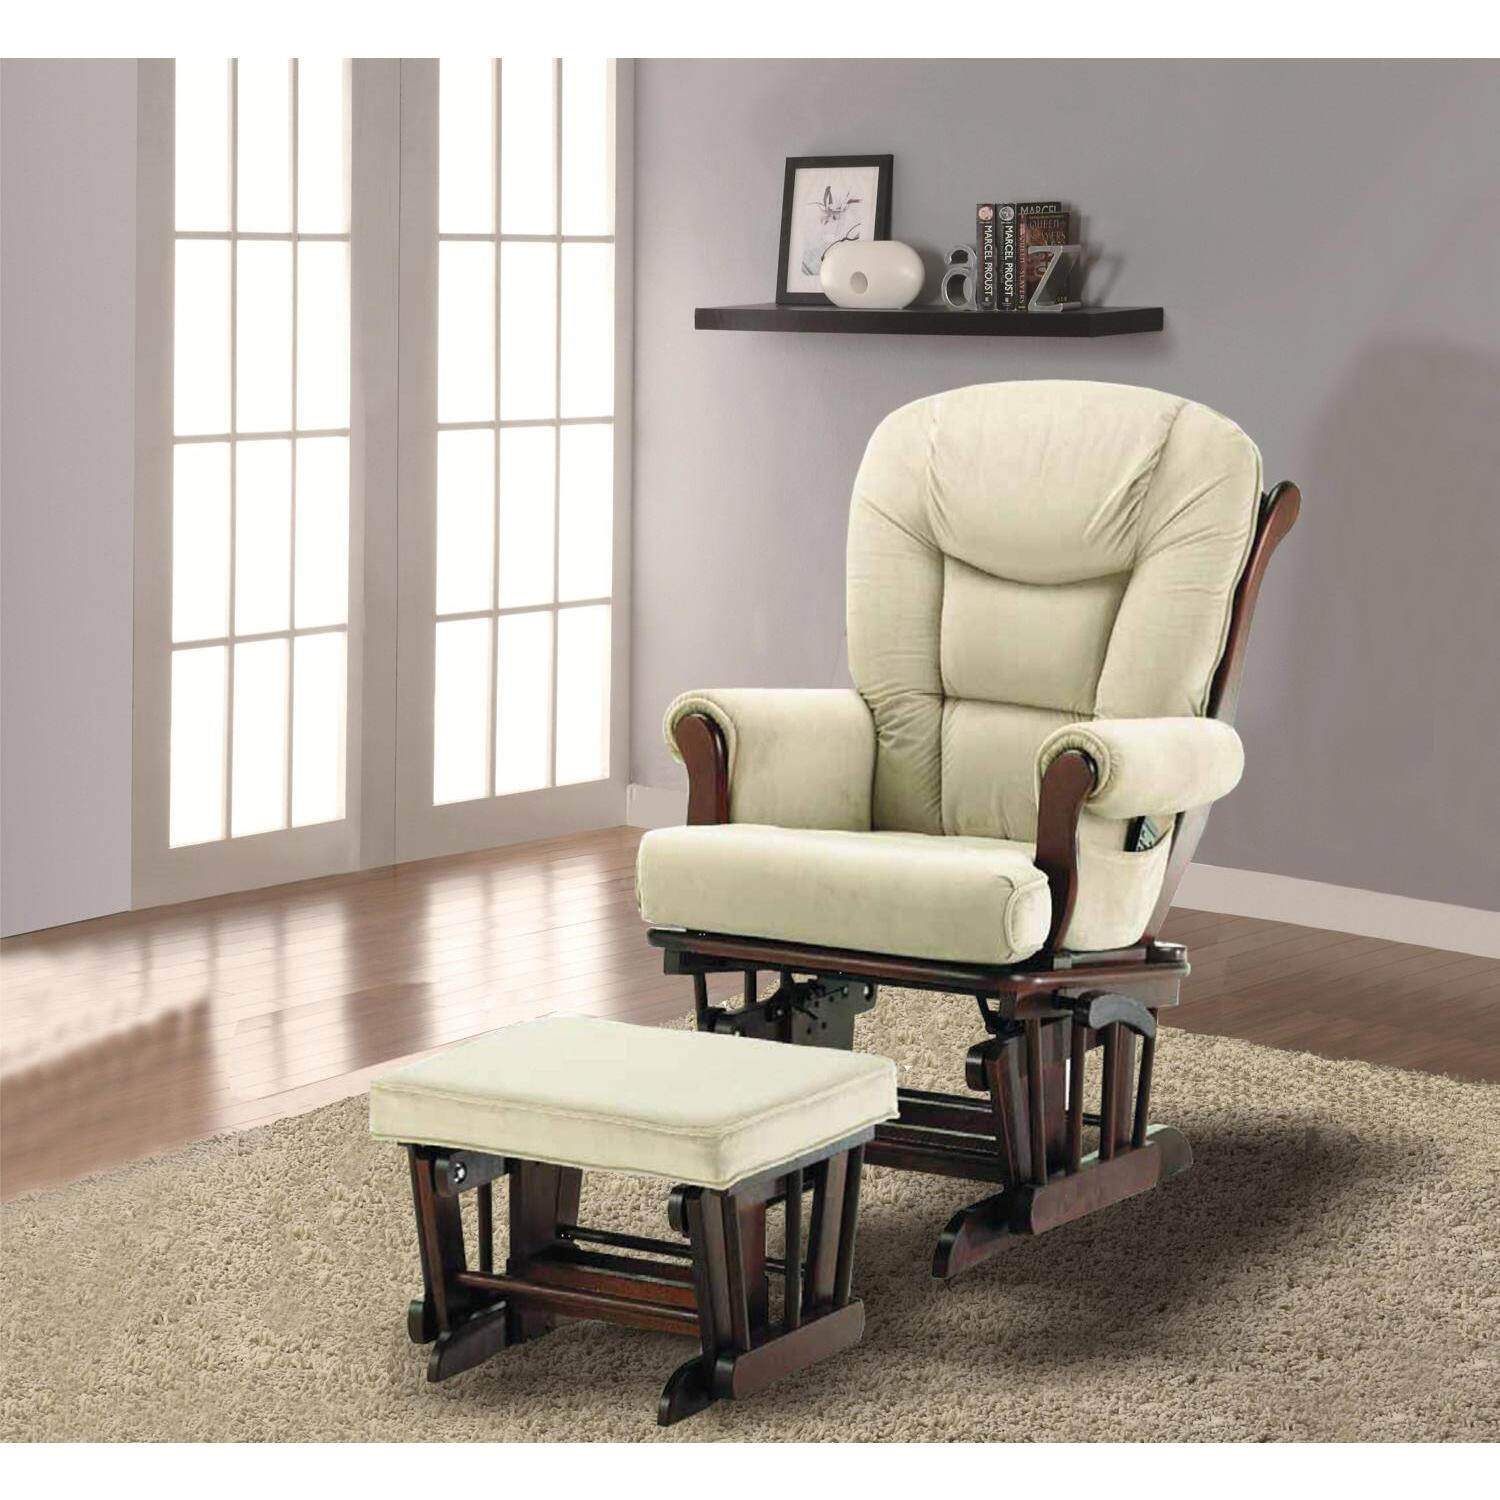 Naomi Home Deluxe Multiposition Sleigh Glider And Ottoman